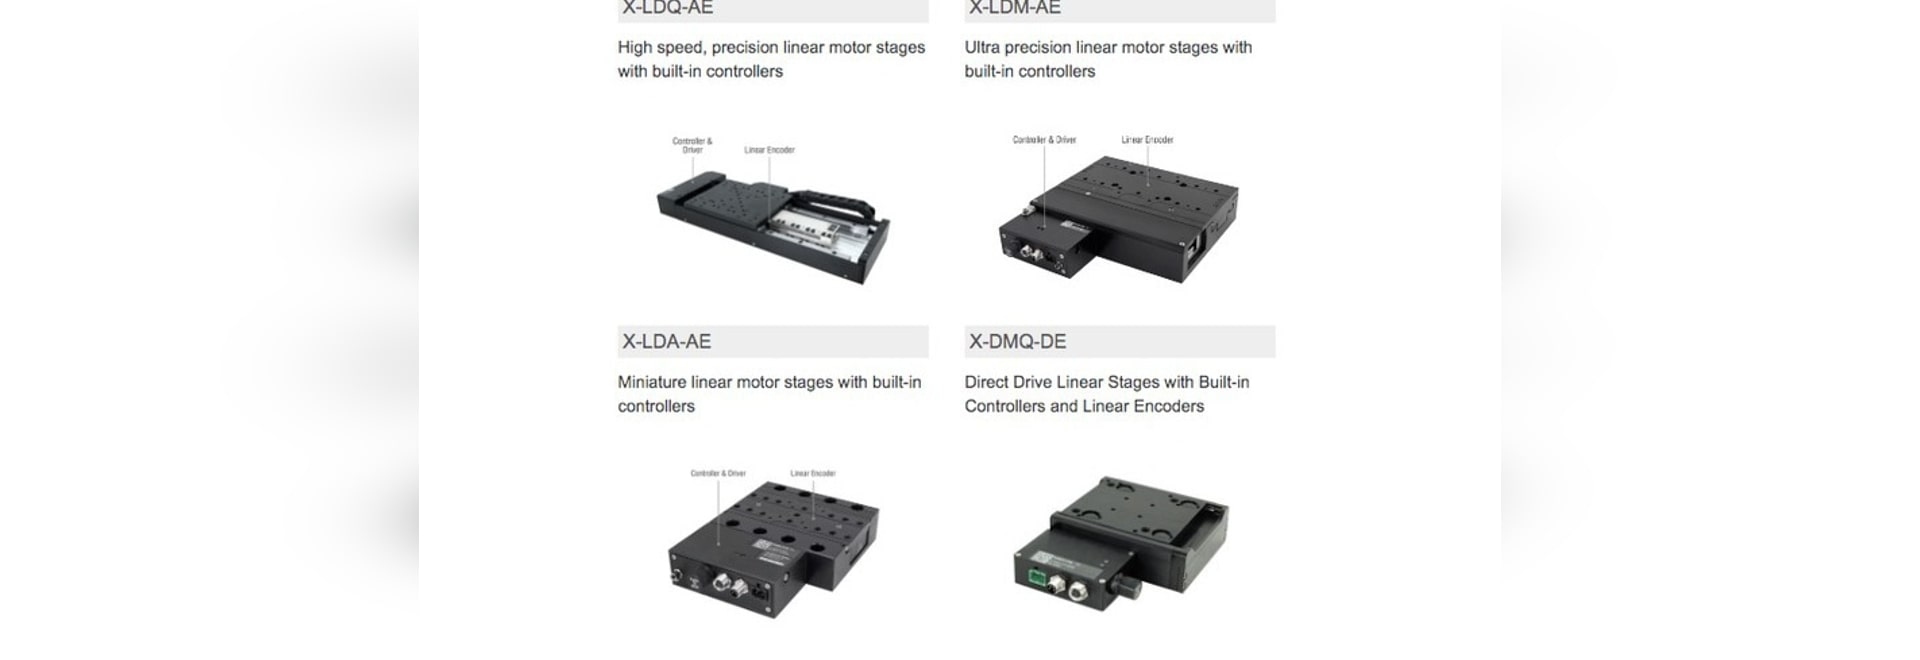 Zaber's Linear Motor Devices